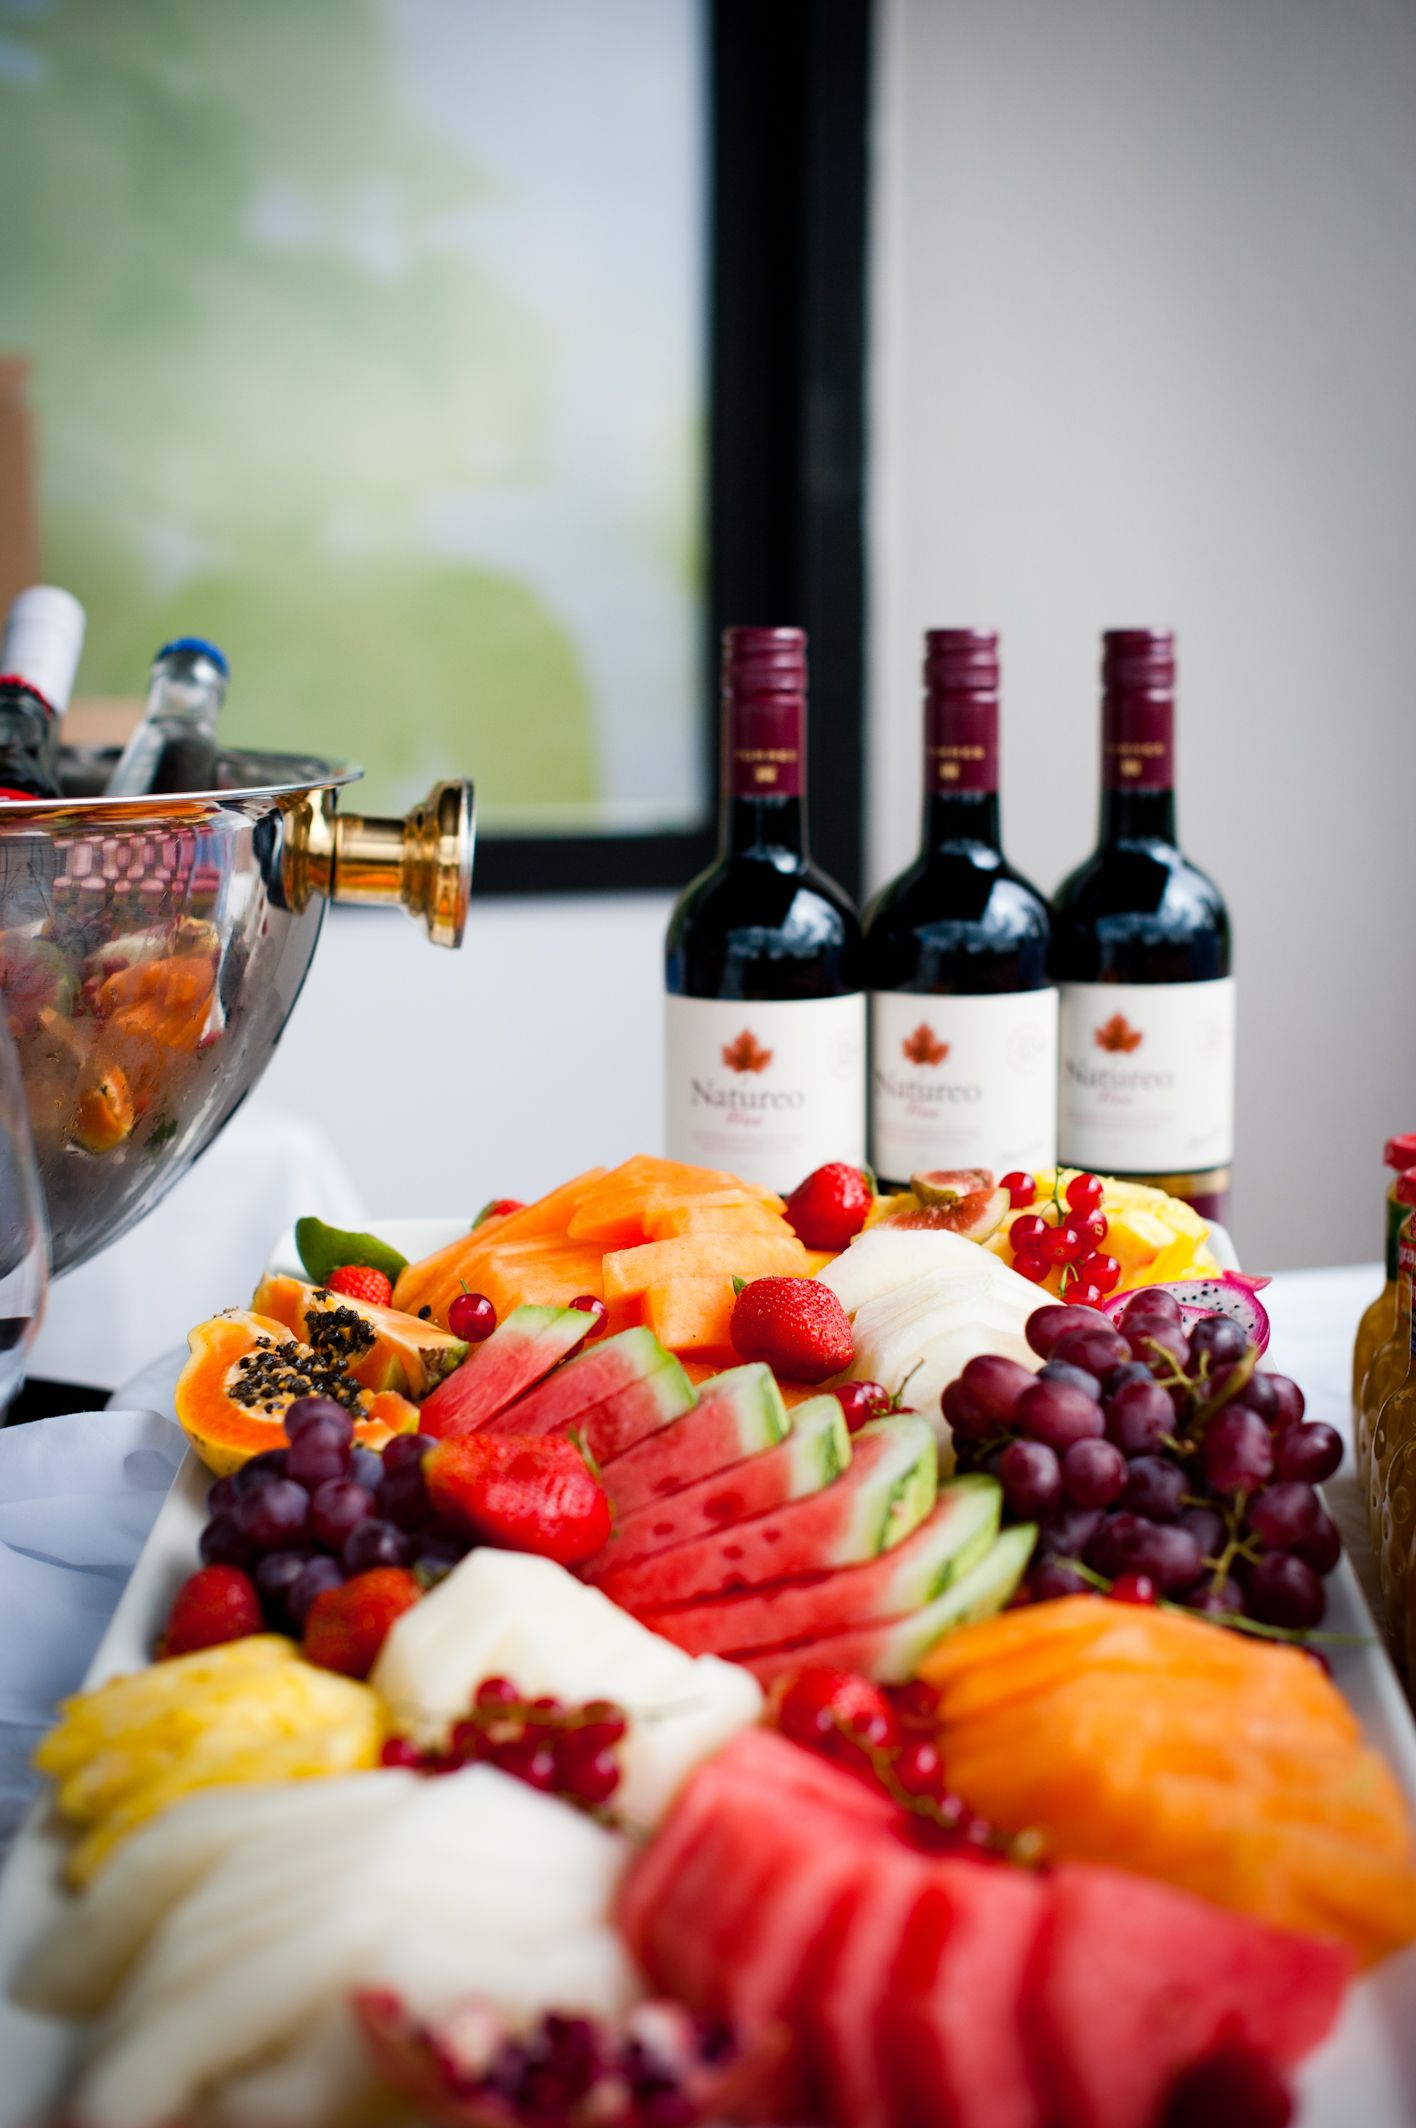 Explore New Wines Or Try An Old Favorite Compare Two Different Wines At Sheraton Social Hour Http Www Threesixtyrestaurant Com En Socialhour